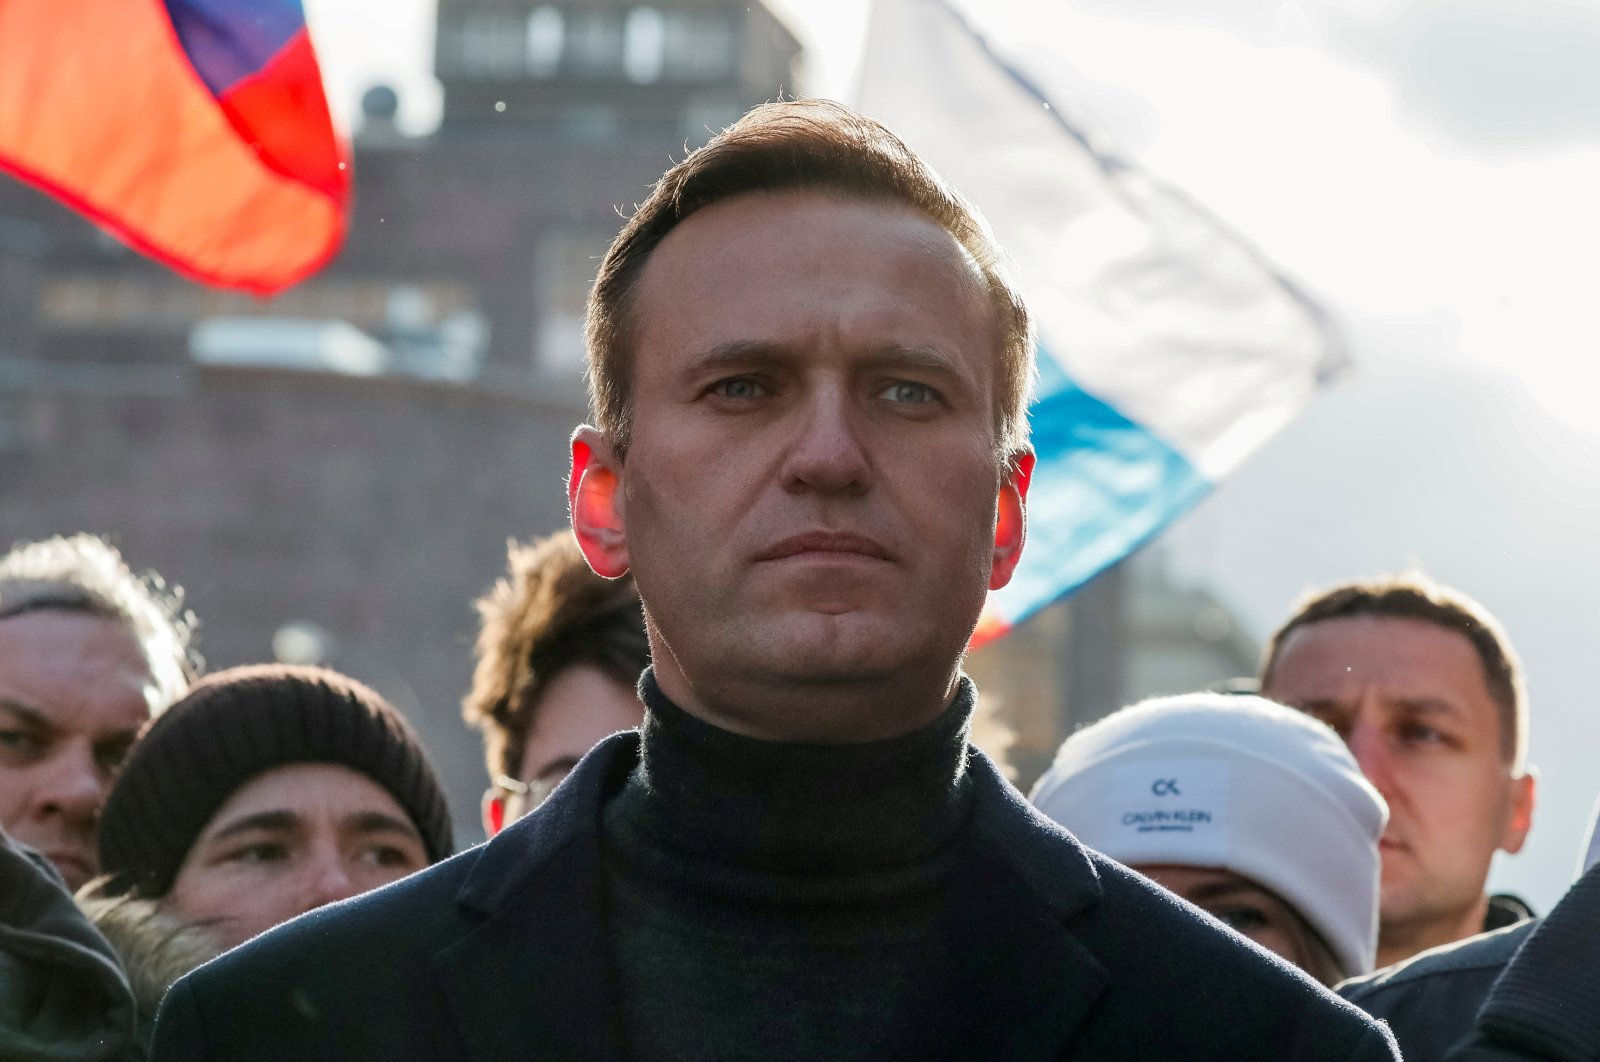 Russian opposition politician Alexei Navalny takes part in a rally to mark the fifth anniversary of opposition politician Boris Nemtsov's murder and to protest against proposed amendments to the country's constitution, in Moscow, Russia, Feb. 29, 2020. (Reuters Photo)